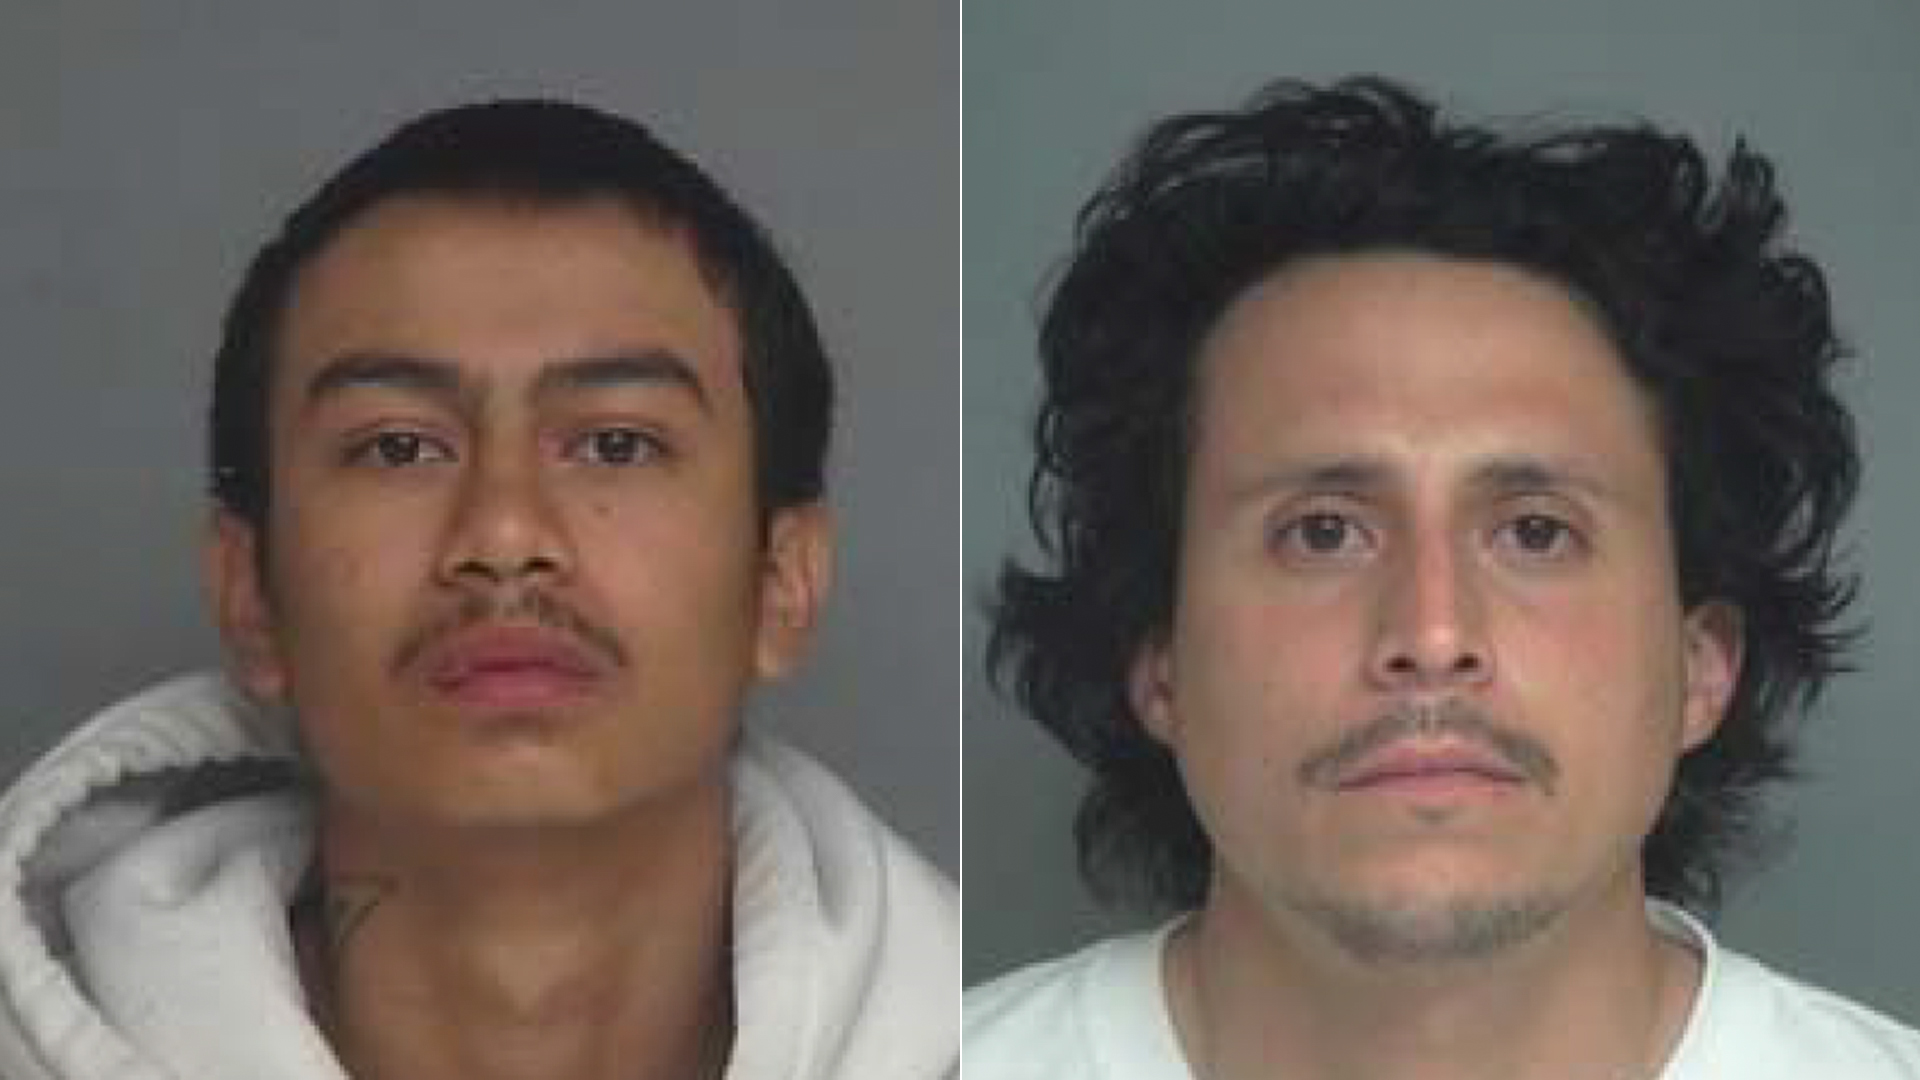 Enrique Torres and Agustin Cortez are shown in photos released by the Garden Grove Police Department on May 25, 2021.